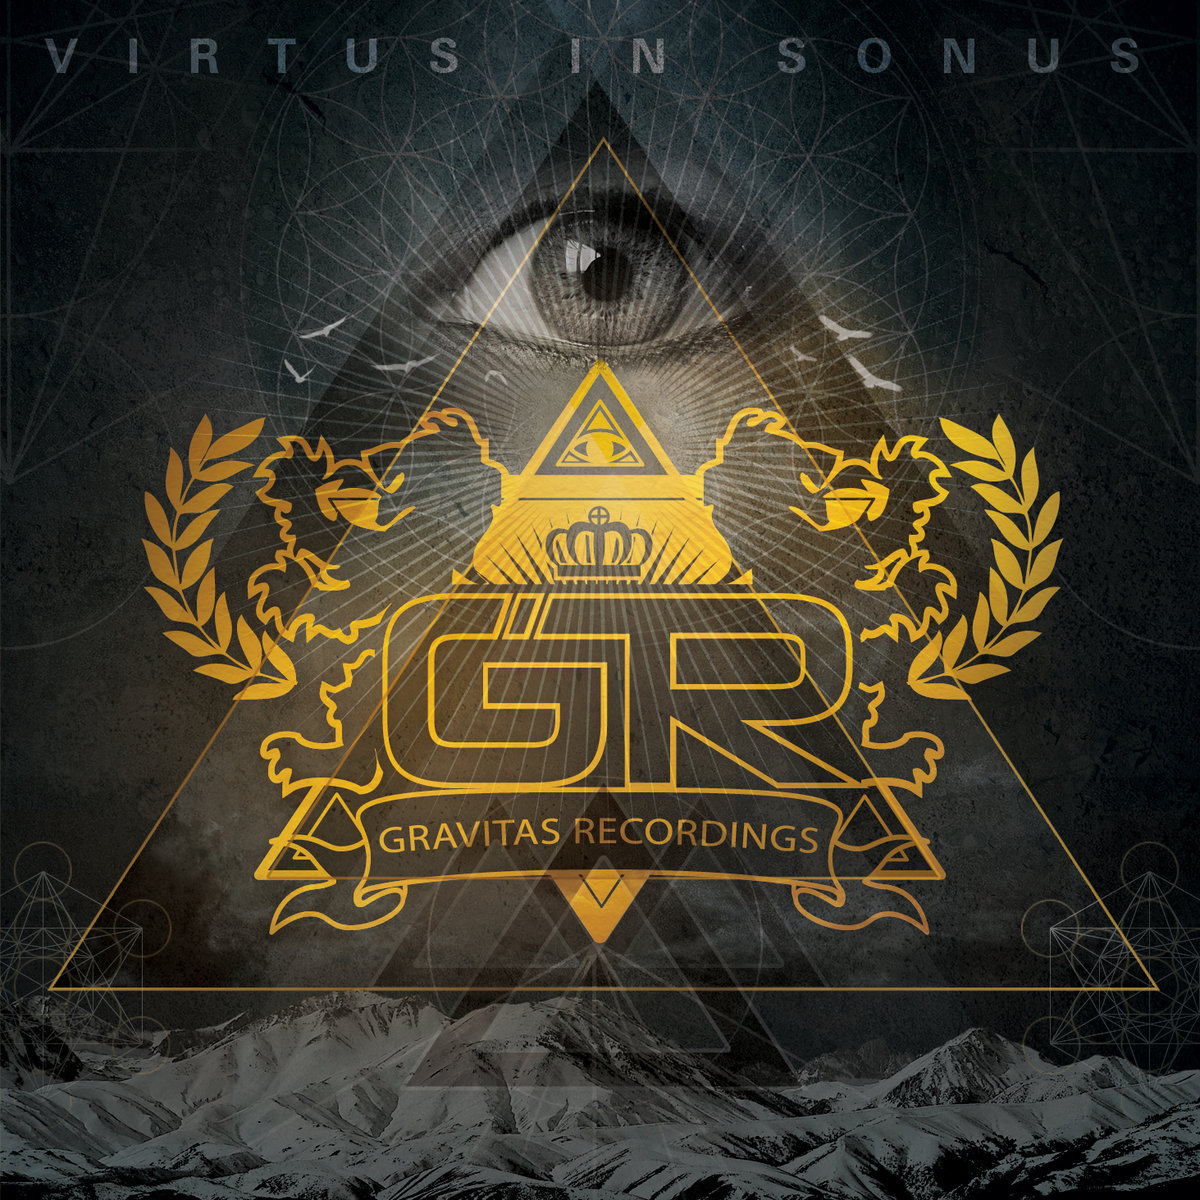 Various Artists - Virtus In Sonus (artwork)